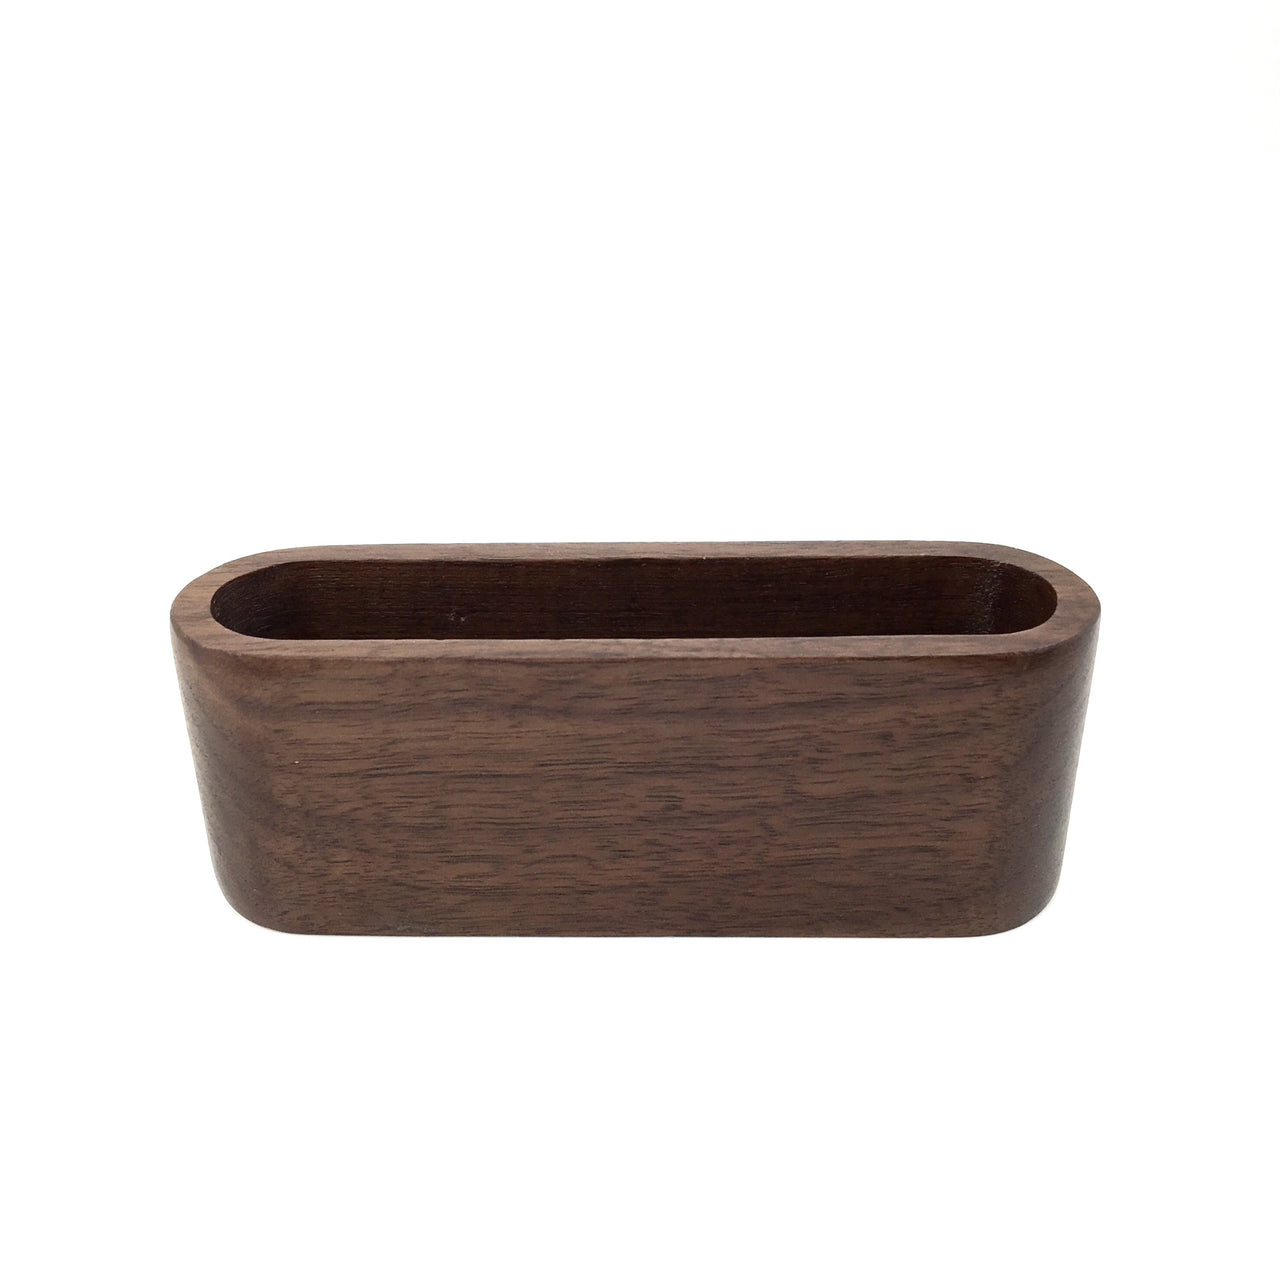 Oval Wood KonMari Desk Organizing Container